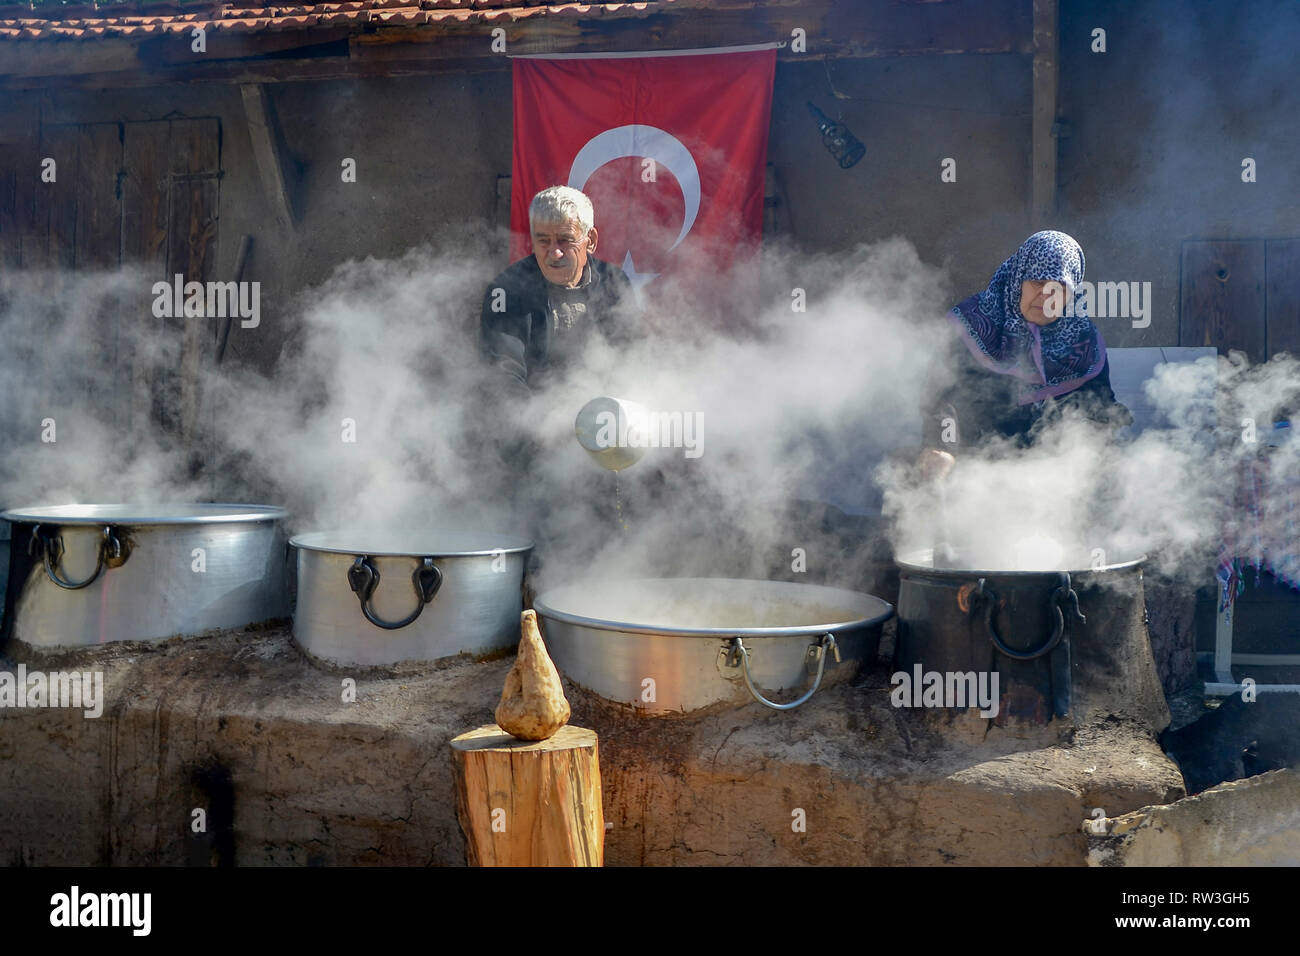 Seyitgazi,Eskisehir,TURKEY-October 15,2016: Old lady and her husband are simmering sugar beets in cauldron to make molasses. - Stock Image